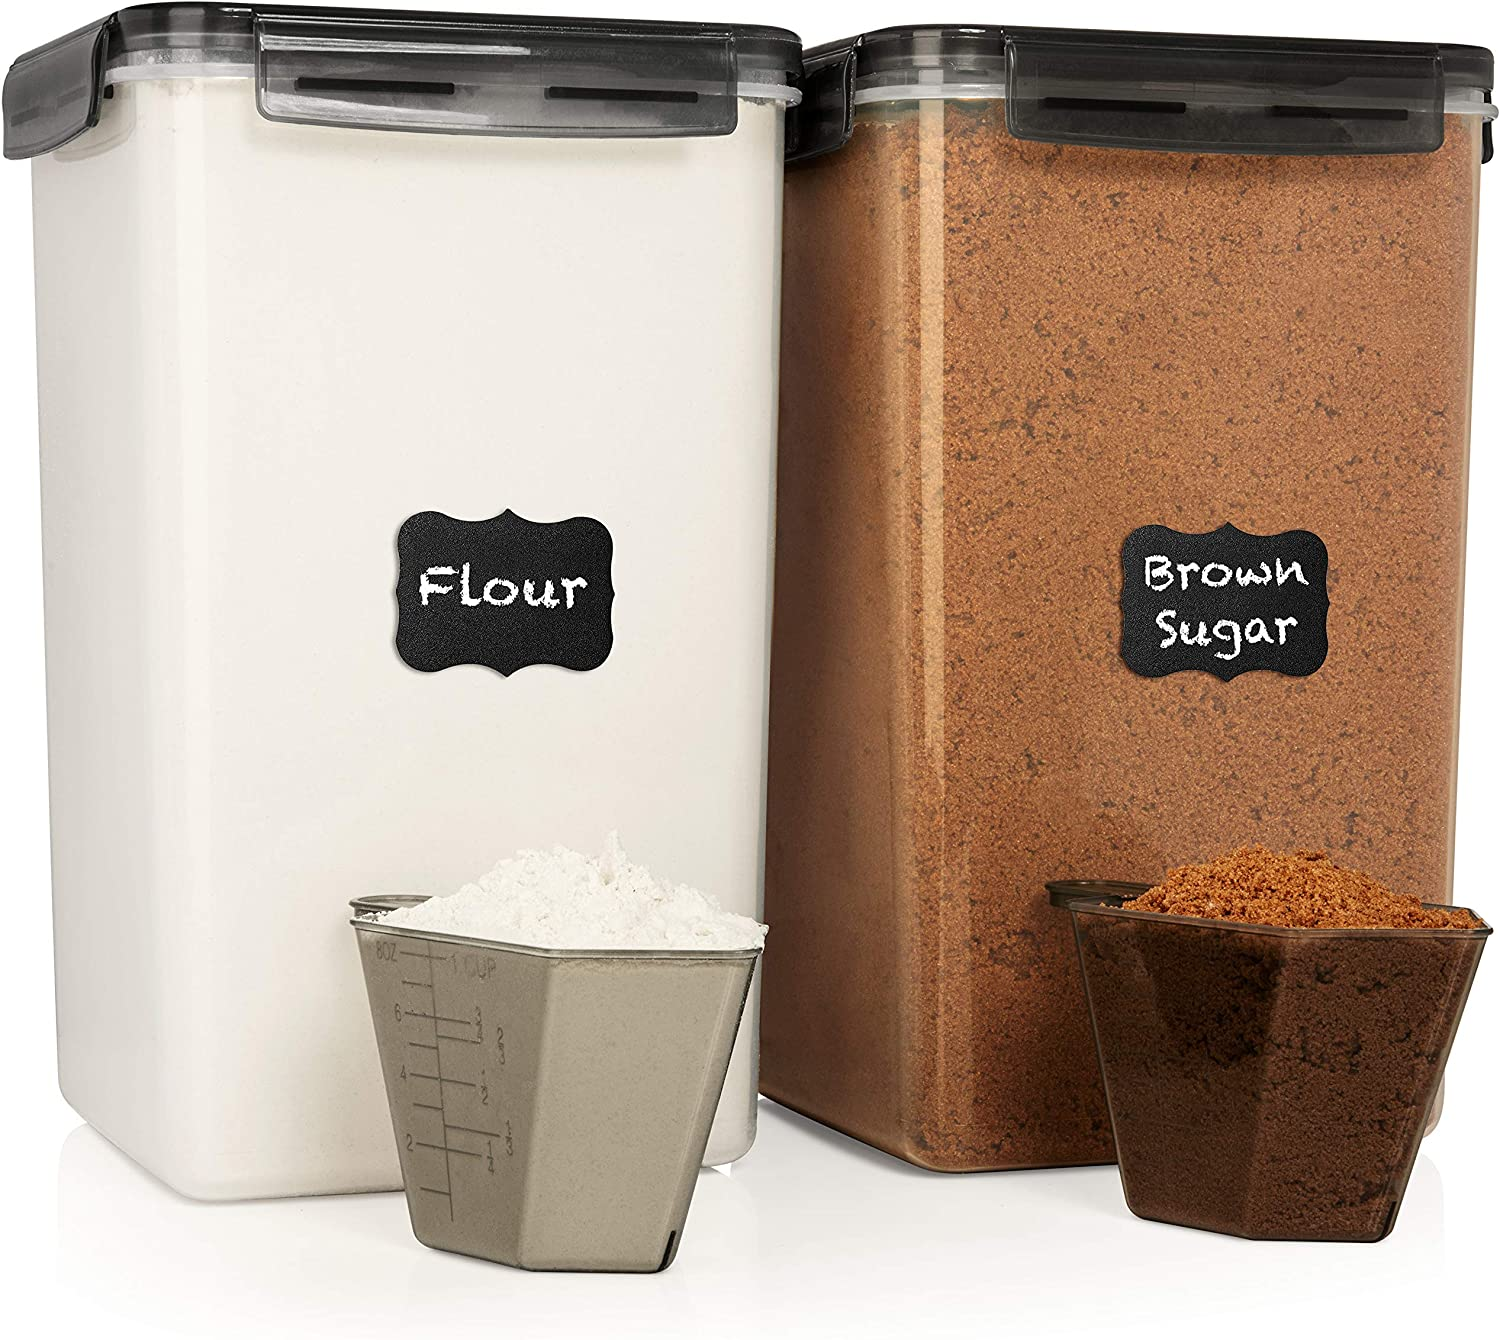 XXL 7 qt / 6.5 L / 220 Oz Food Storage Airtight Pantry Containers [Set of 2] WIDE & DEEP + FREE 2 Measuring Cup + deal for Sugar, Flour - Clear Plastic - Leakproof - BPA Free - Grey